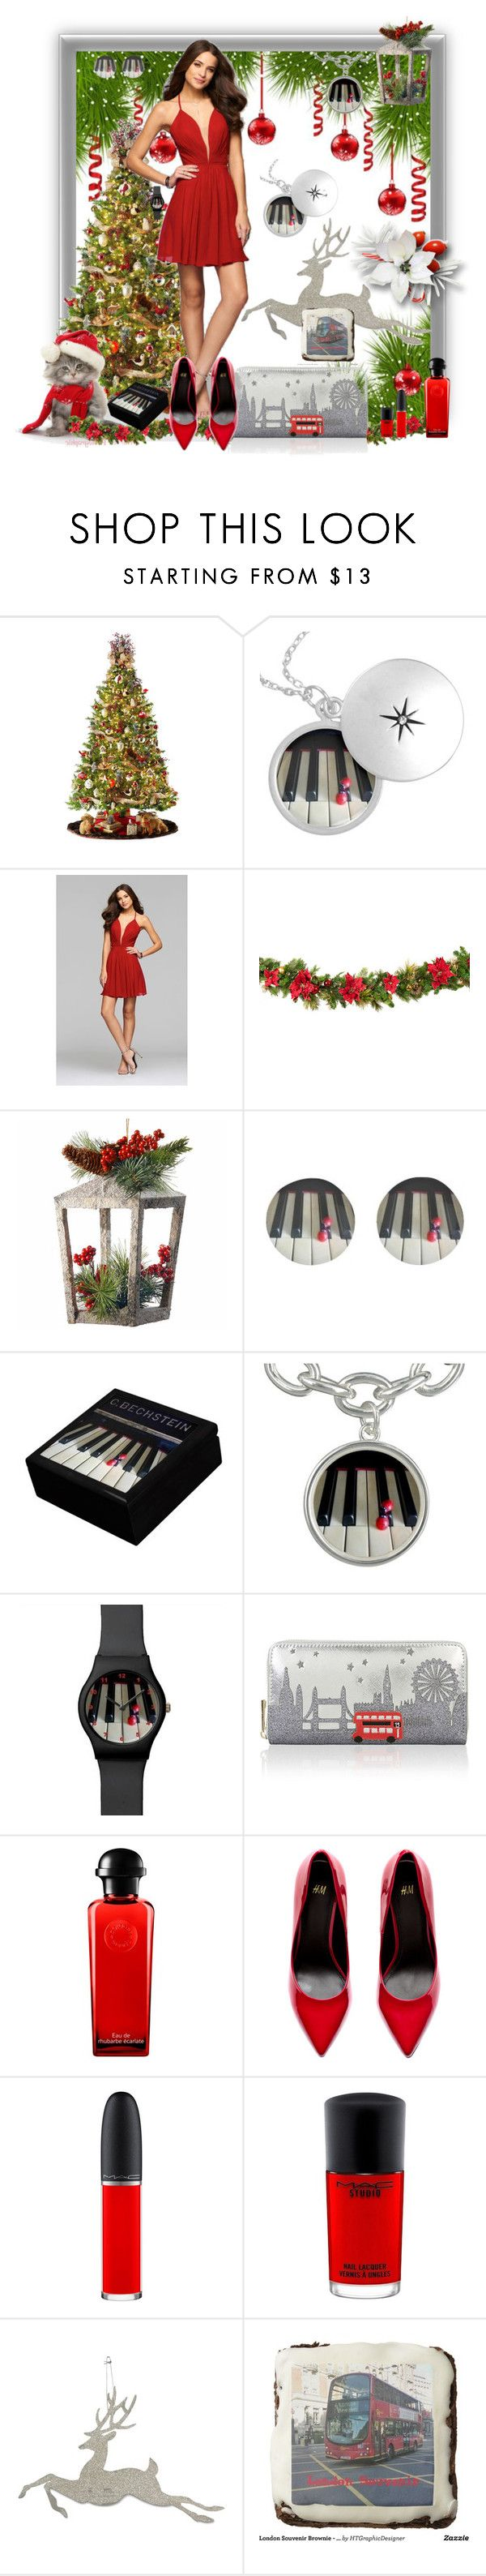 """""""New Year Party"""" by hanzaturgul ❤ liked on Polyvore featuring General Foam, Faviana, National Tree Company, Accessorize, Hermès, H&M, MAC Cosmetics, Bethany Lowe, party and London"""